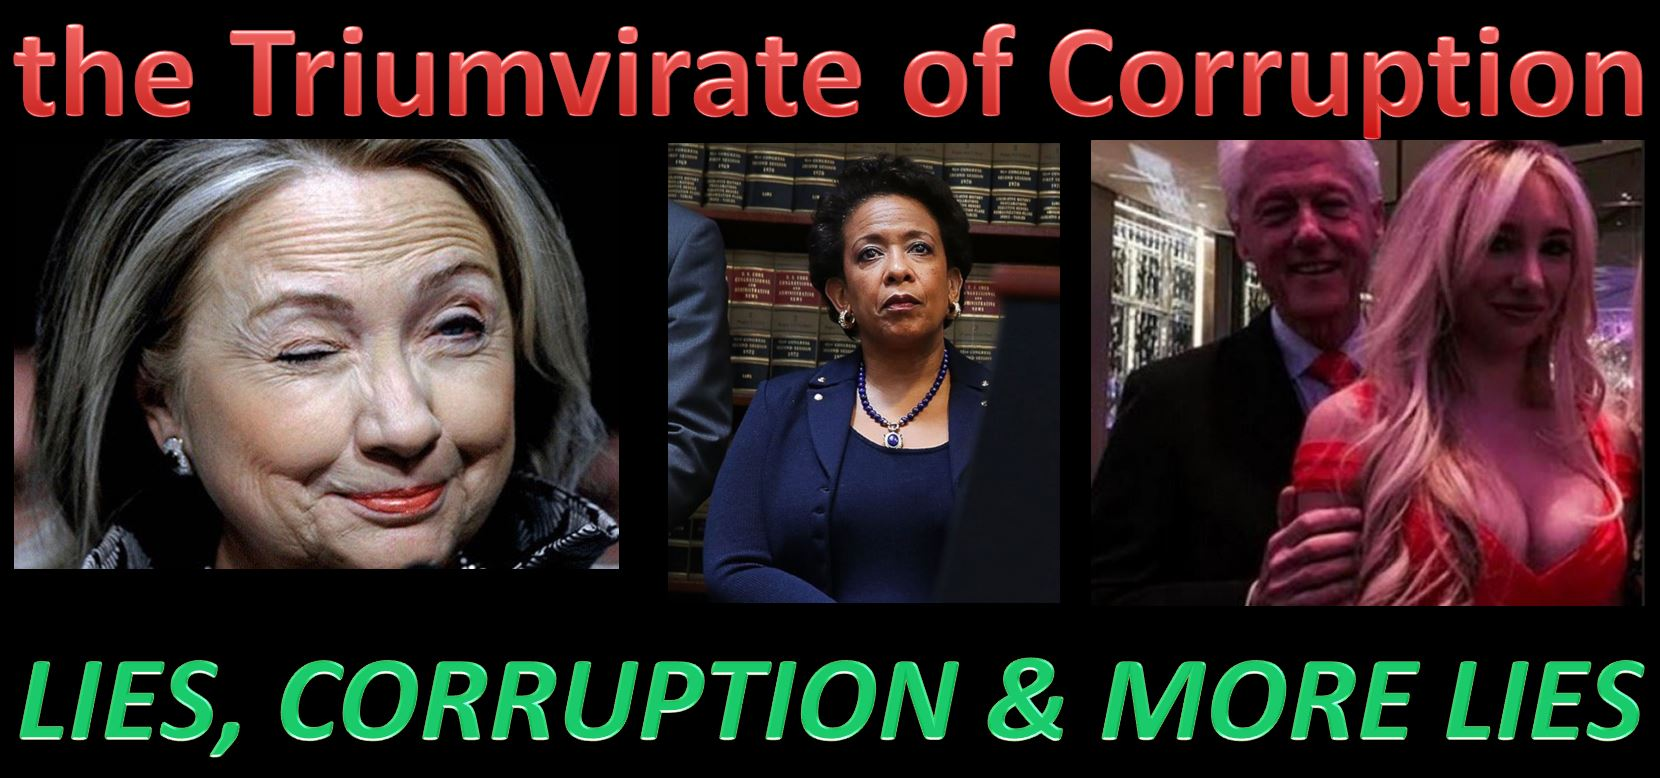 triumvirate-of-corruption-democrat-lies-via-bill-and-hill-and-loretta